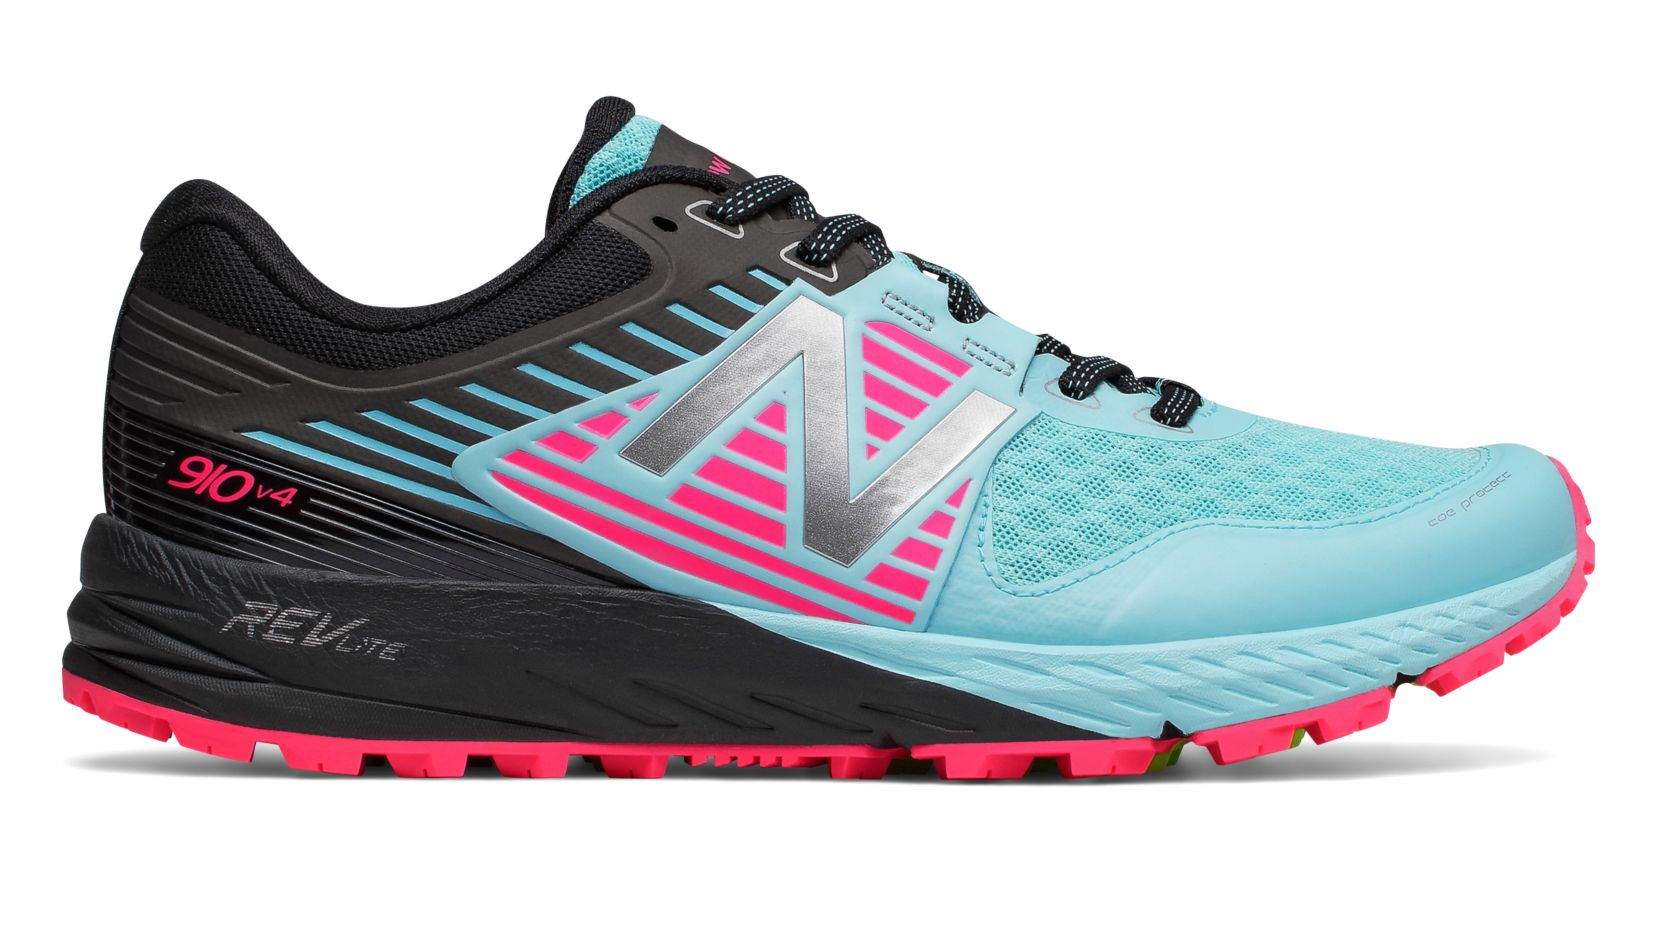 NewBalance 910v4 Trail WT910BB4 SEA SPRAYALPHA PINK size 6.5-7.5